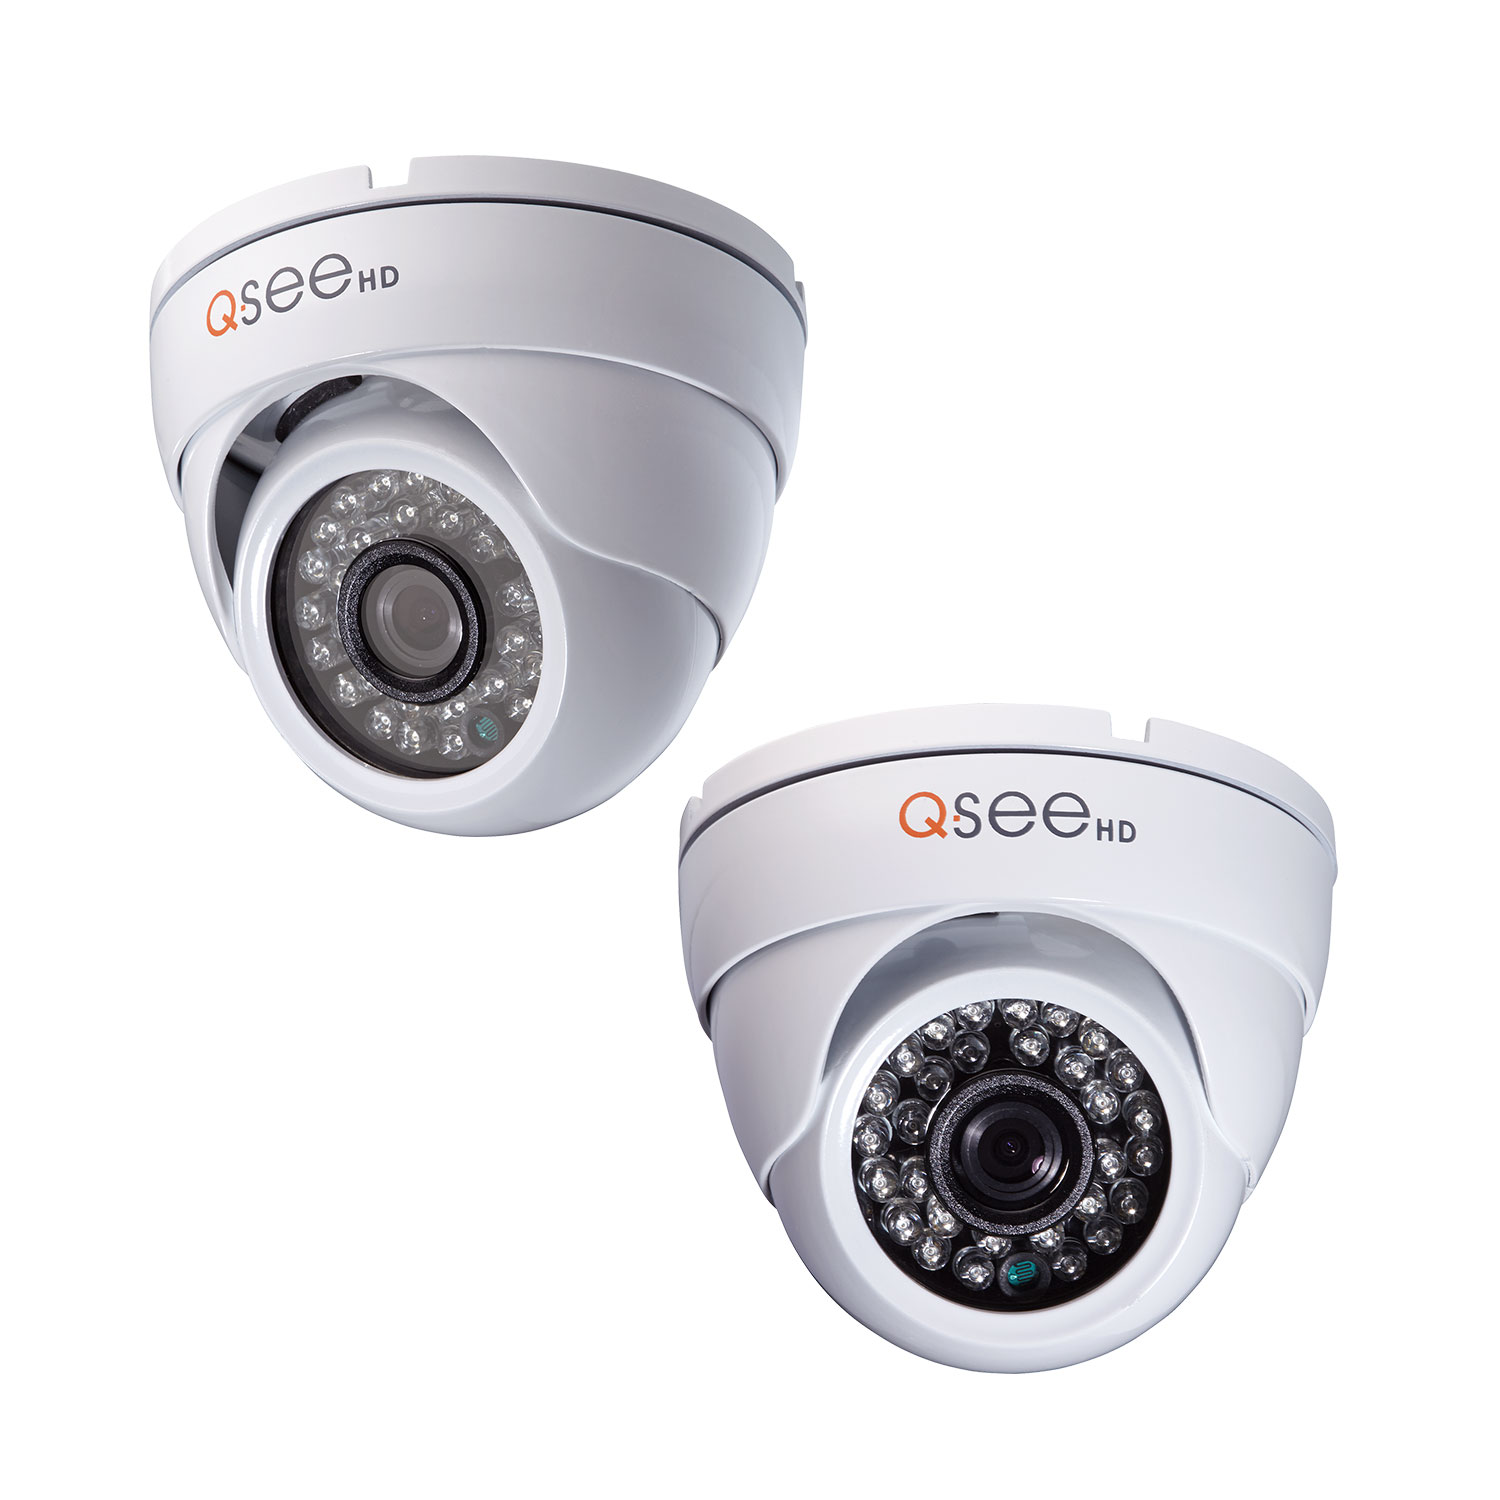 Q-See 720P Analog HD Dome Security Camera 2 Pack